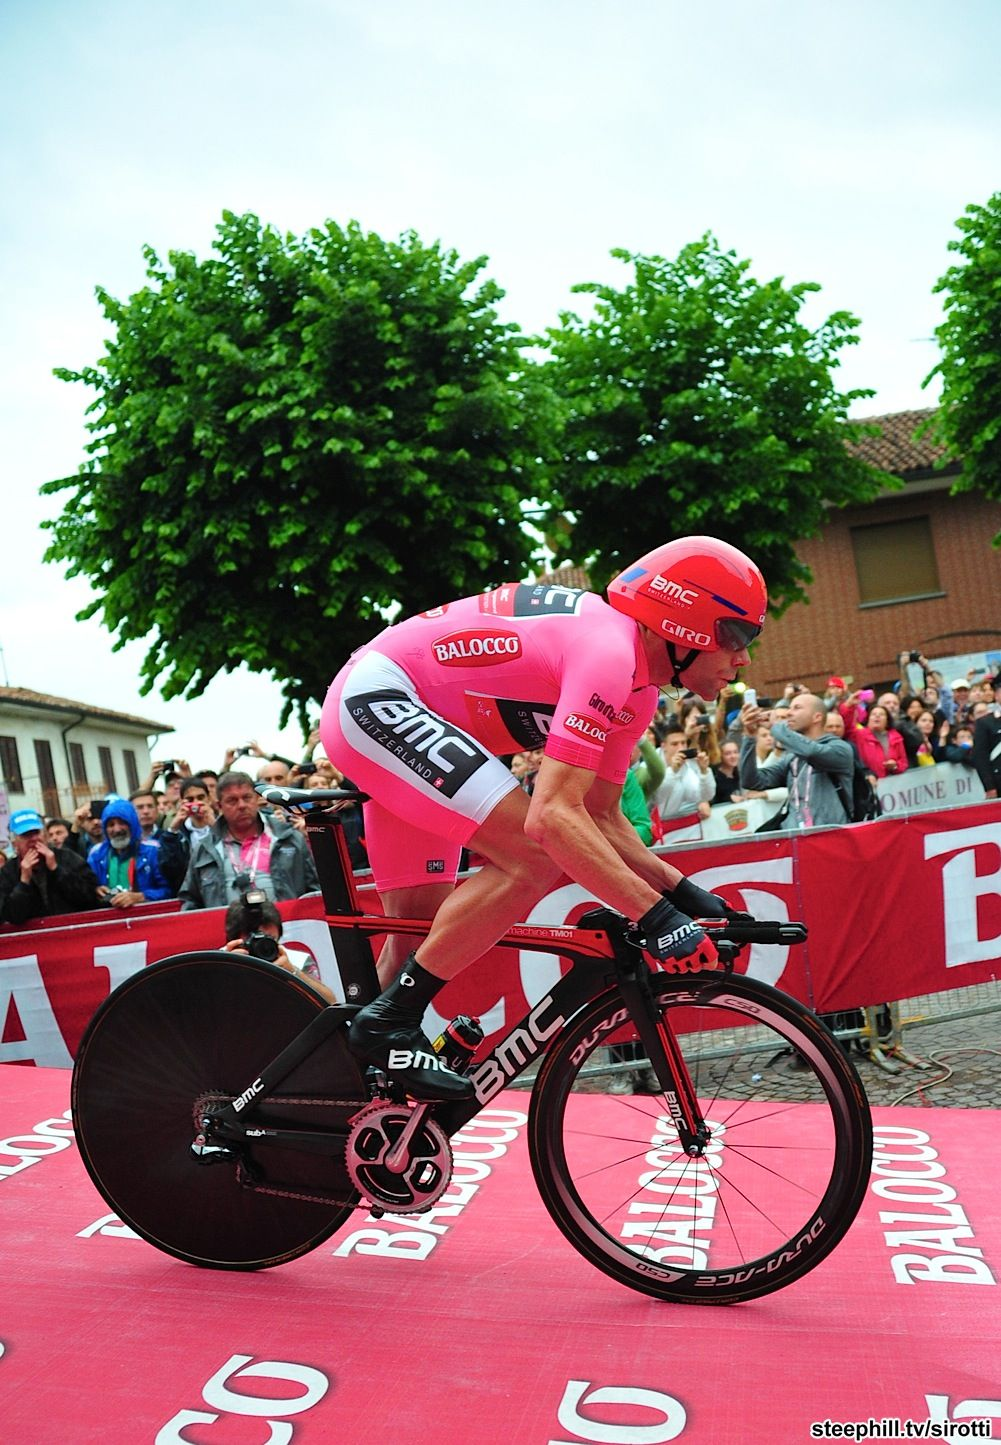 Giro 2014 12 41 9 Km Itt Barbaresco Barolo Cadel Evans Australia Bmc Survived A Tough Course And Day For 3rd 1 34 Bu Deportes Ciclista Ciclismo